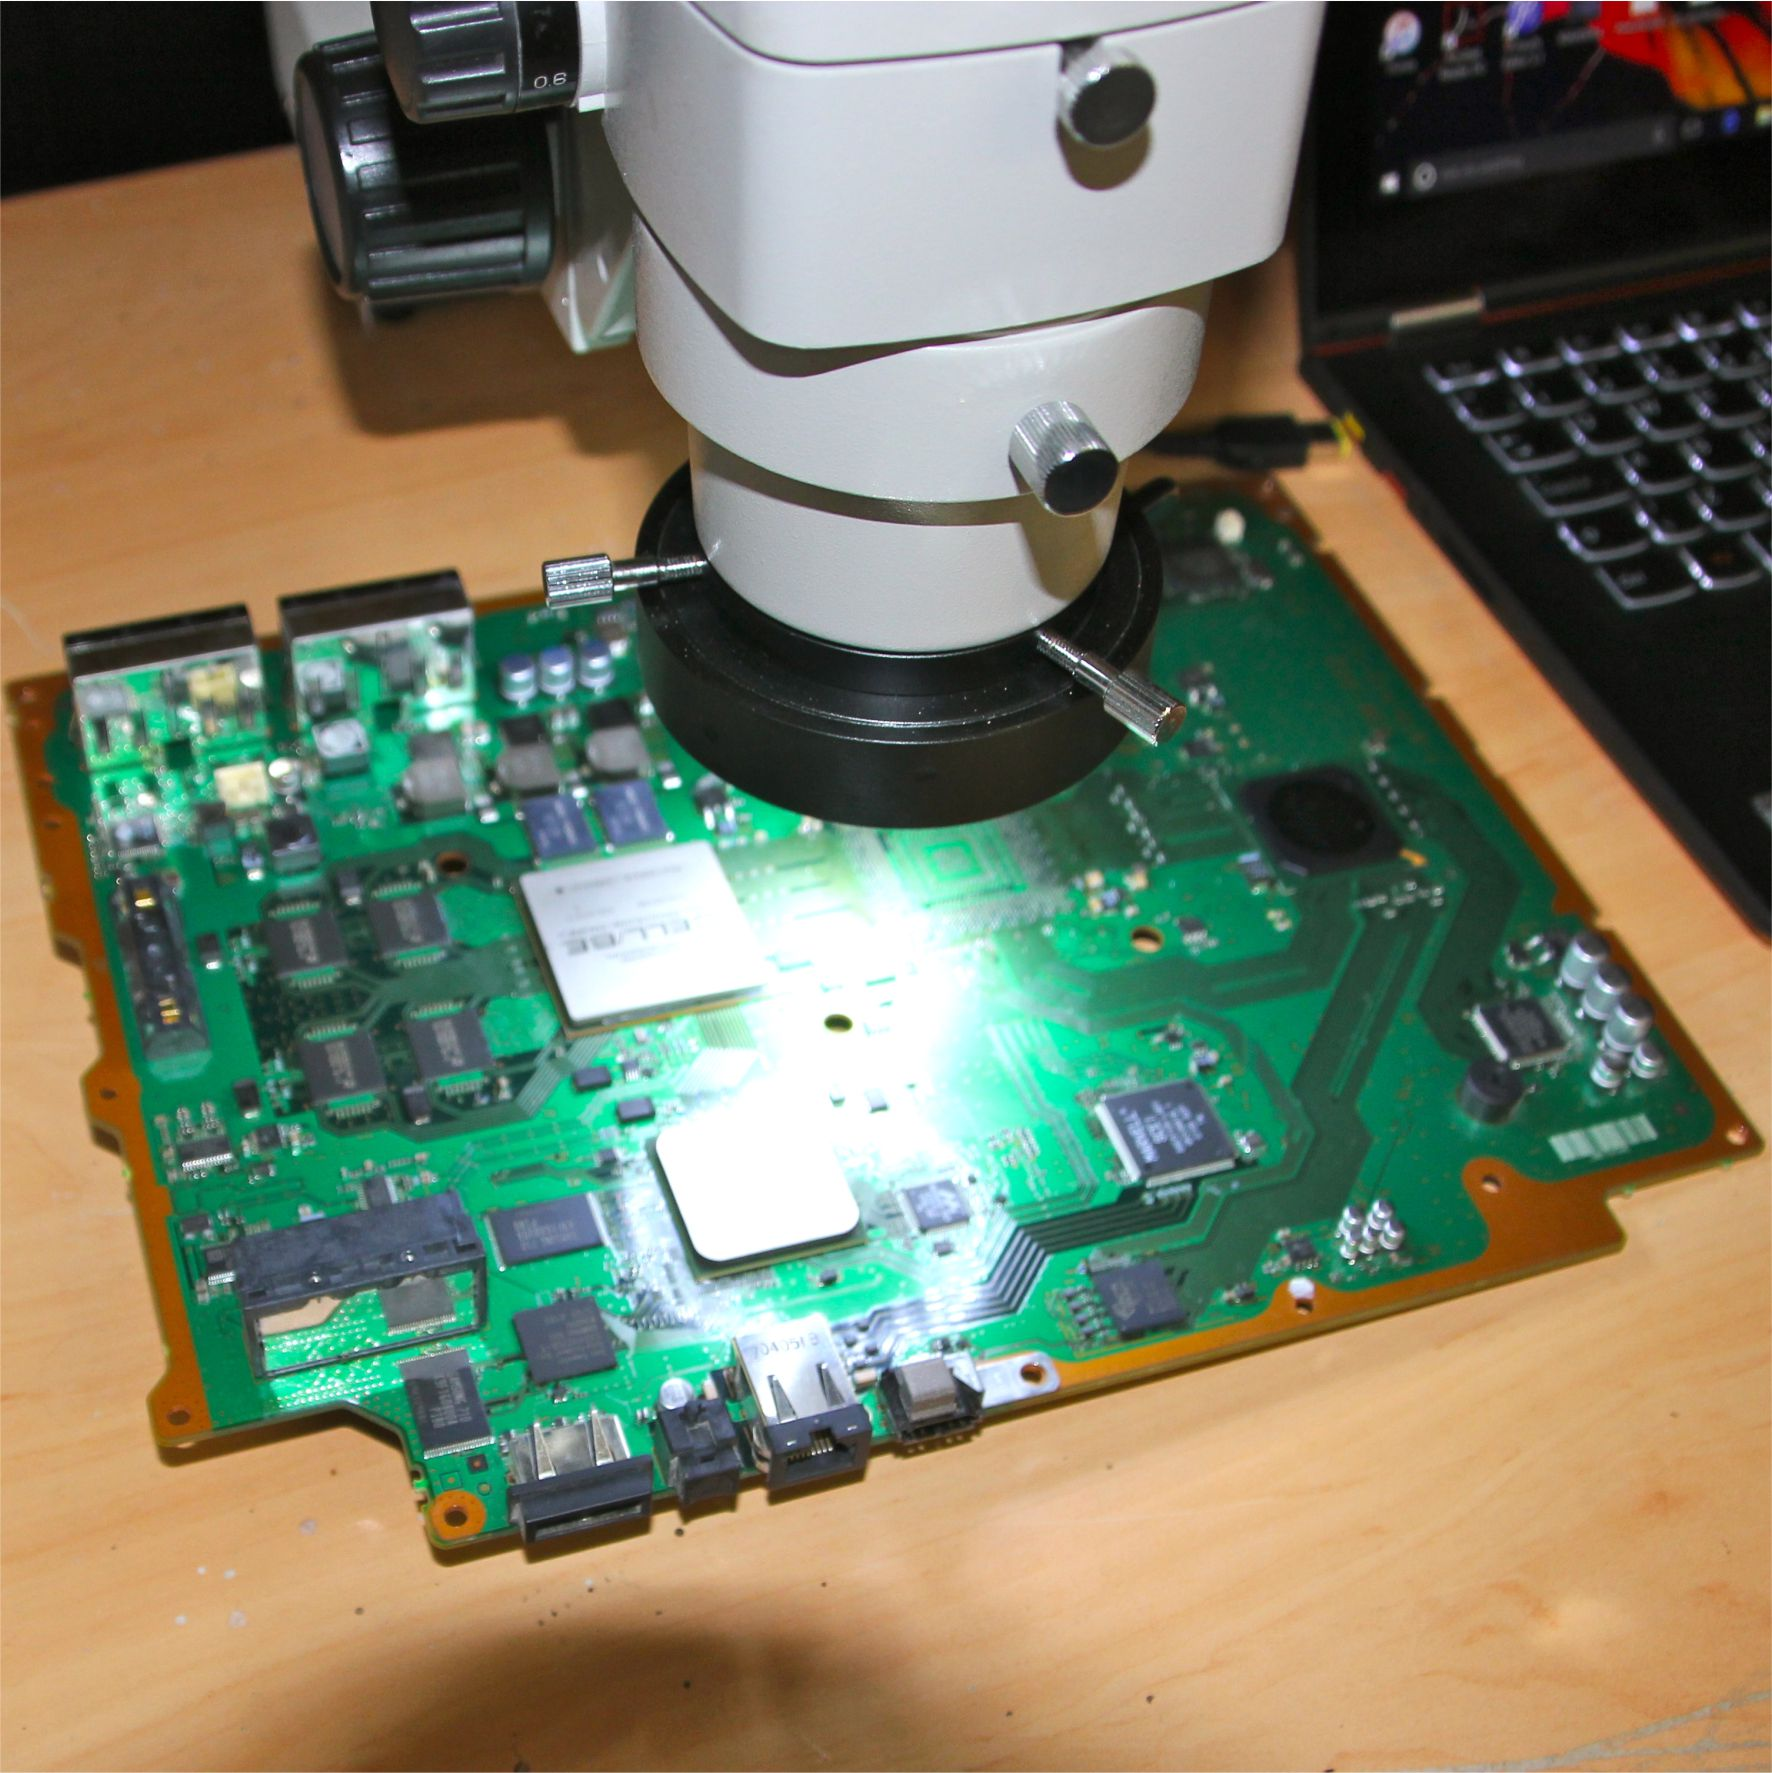 Playstation Repairs - The Repair Service Sutton in Ashfield